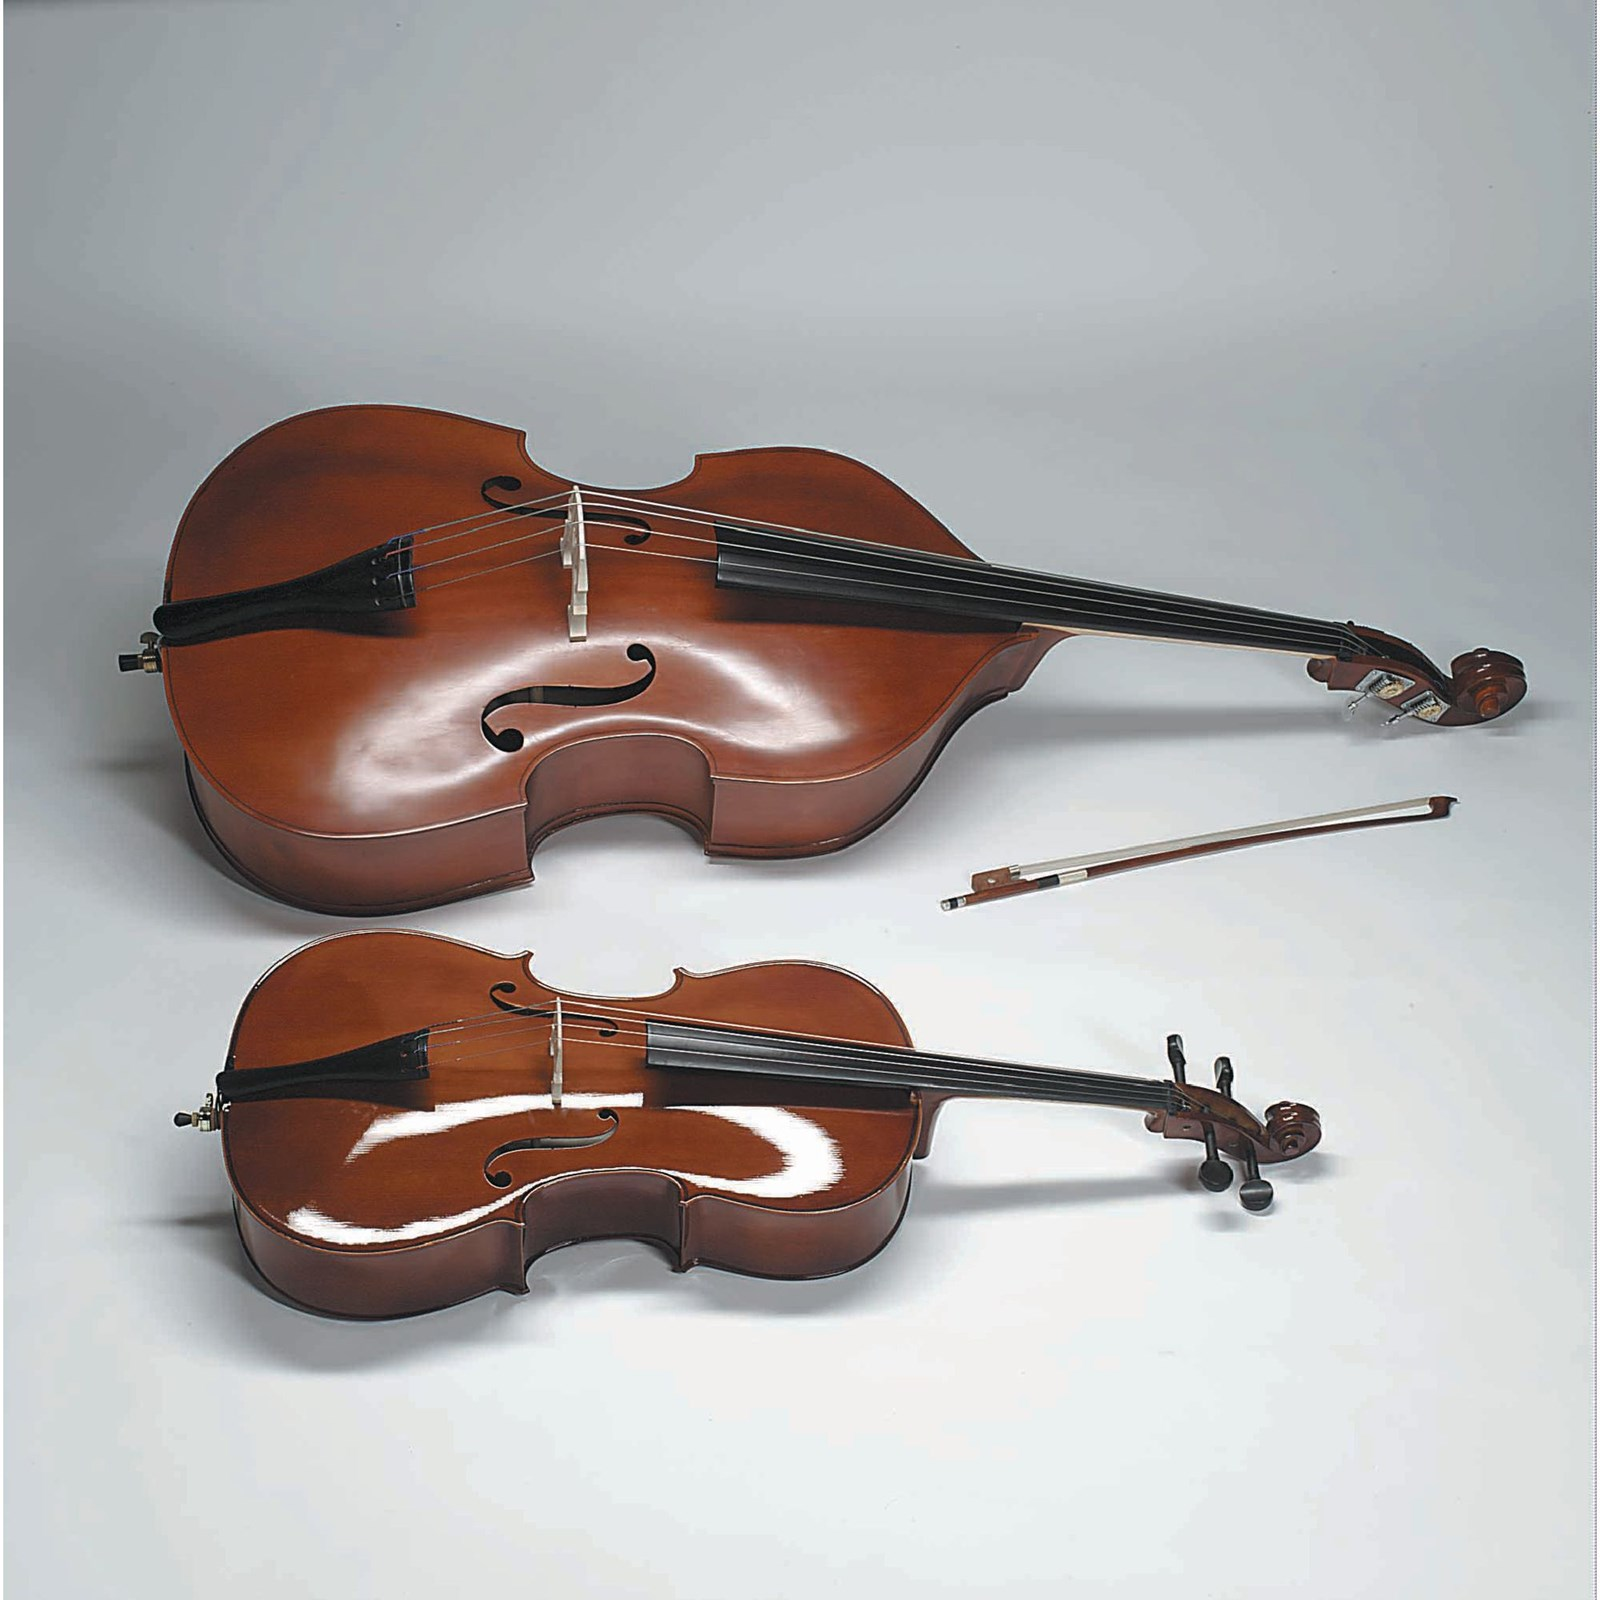 Antoni Violin Outfit - ¼ Size